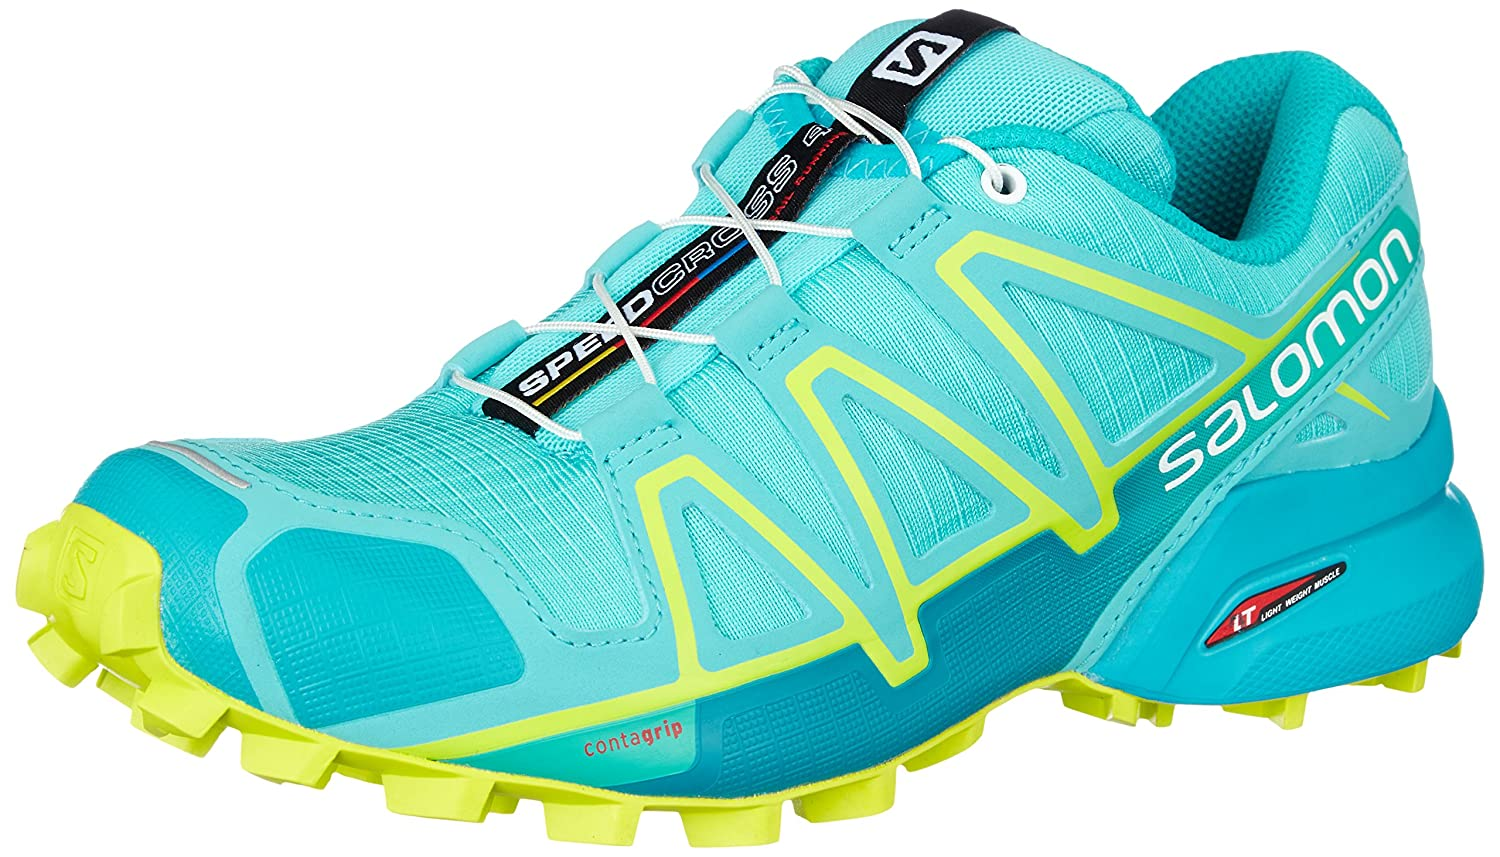 Amazon.com | Salomon Speedcross 4 Trail Running Shoe - Womens, Blue Curacao/Bluebird/Acid Lime, 5, L40124700-5 | Trail Running